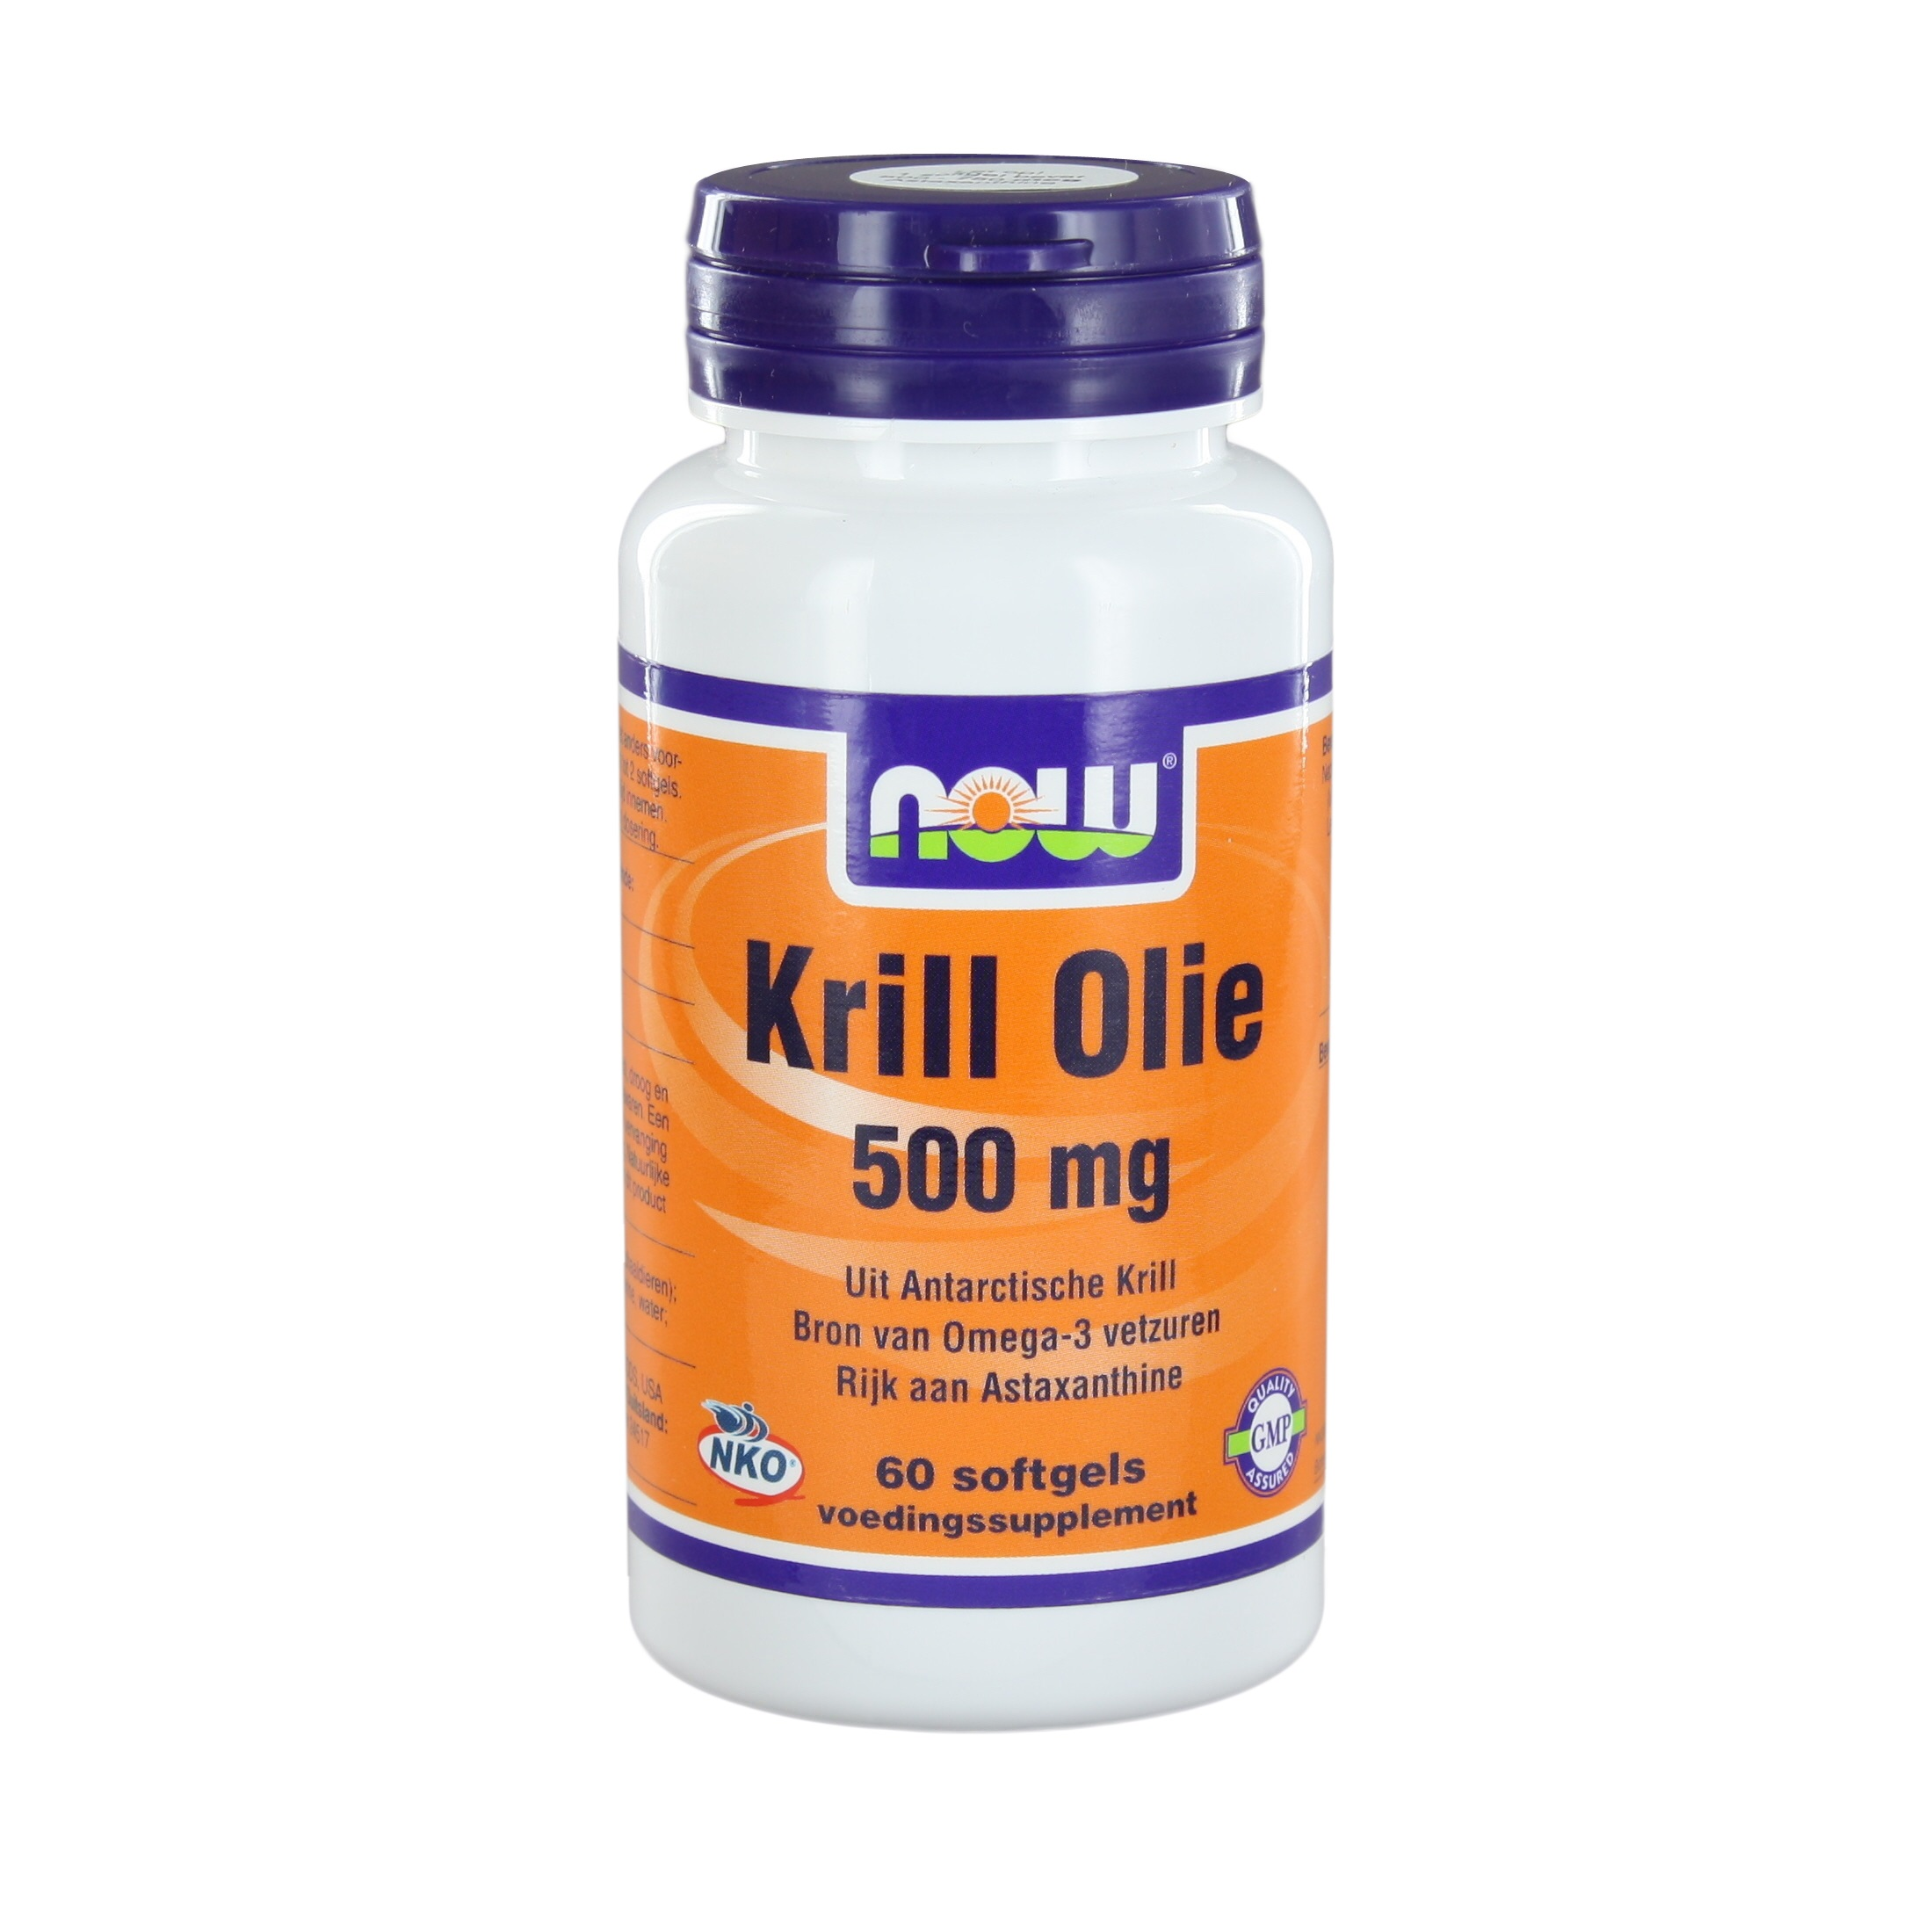 Now Krill Olie